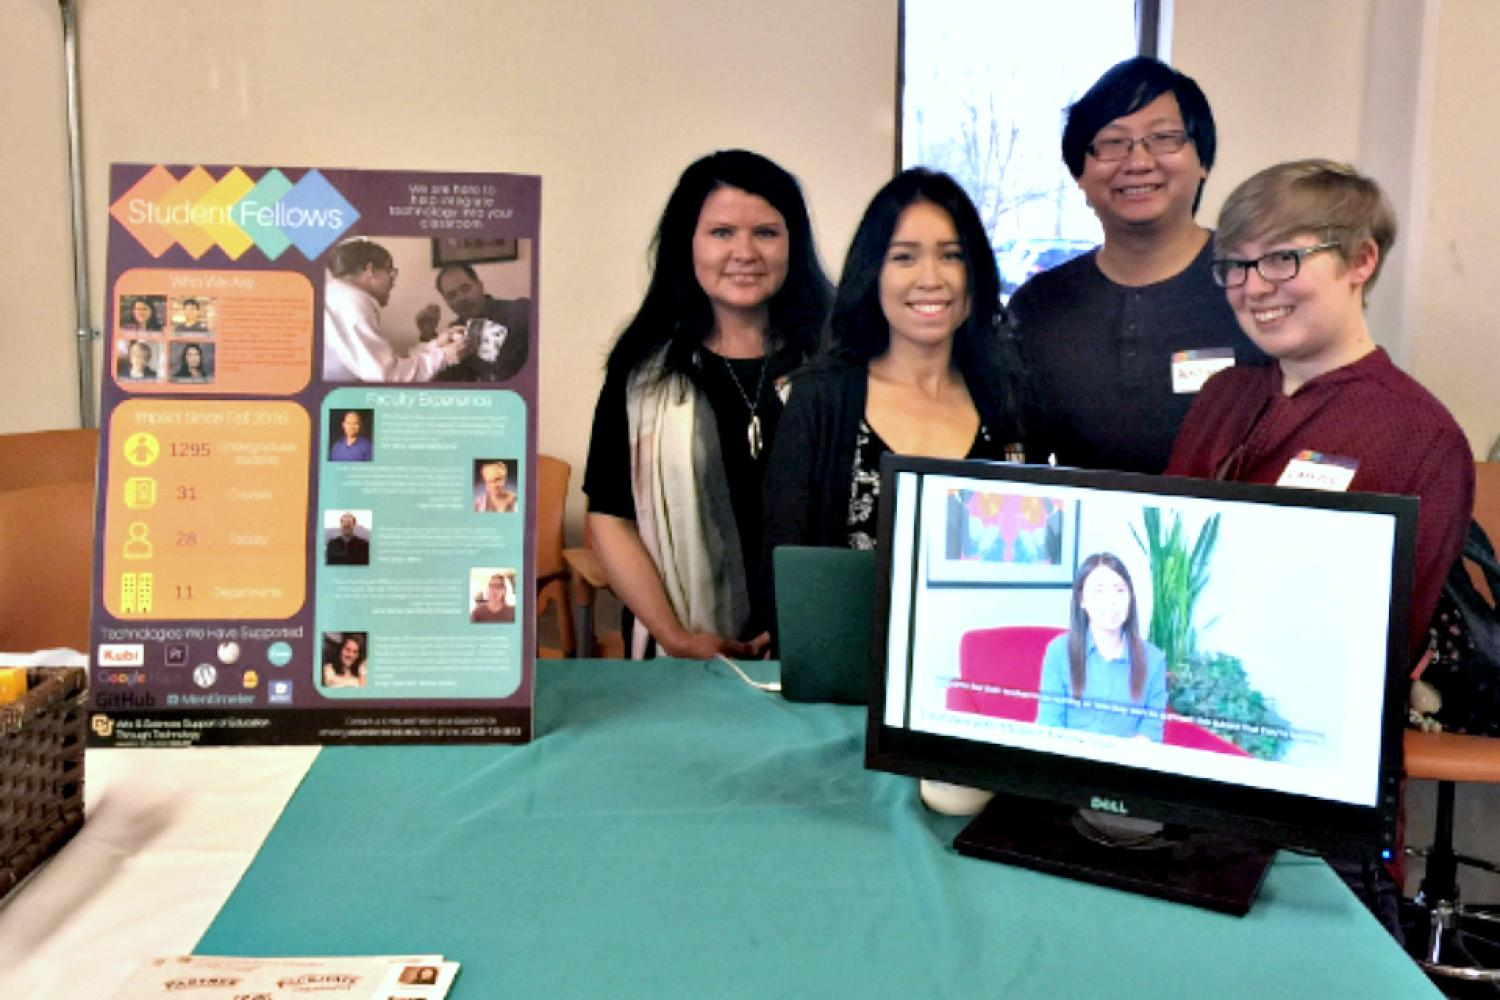 Student Fellows staffing an information booth at the 2018 ATDT Showcase